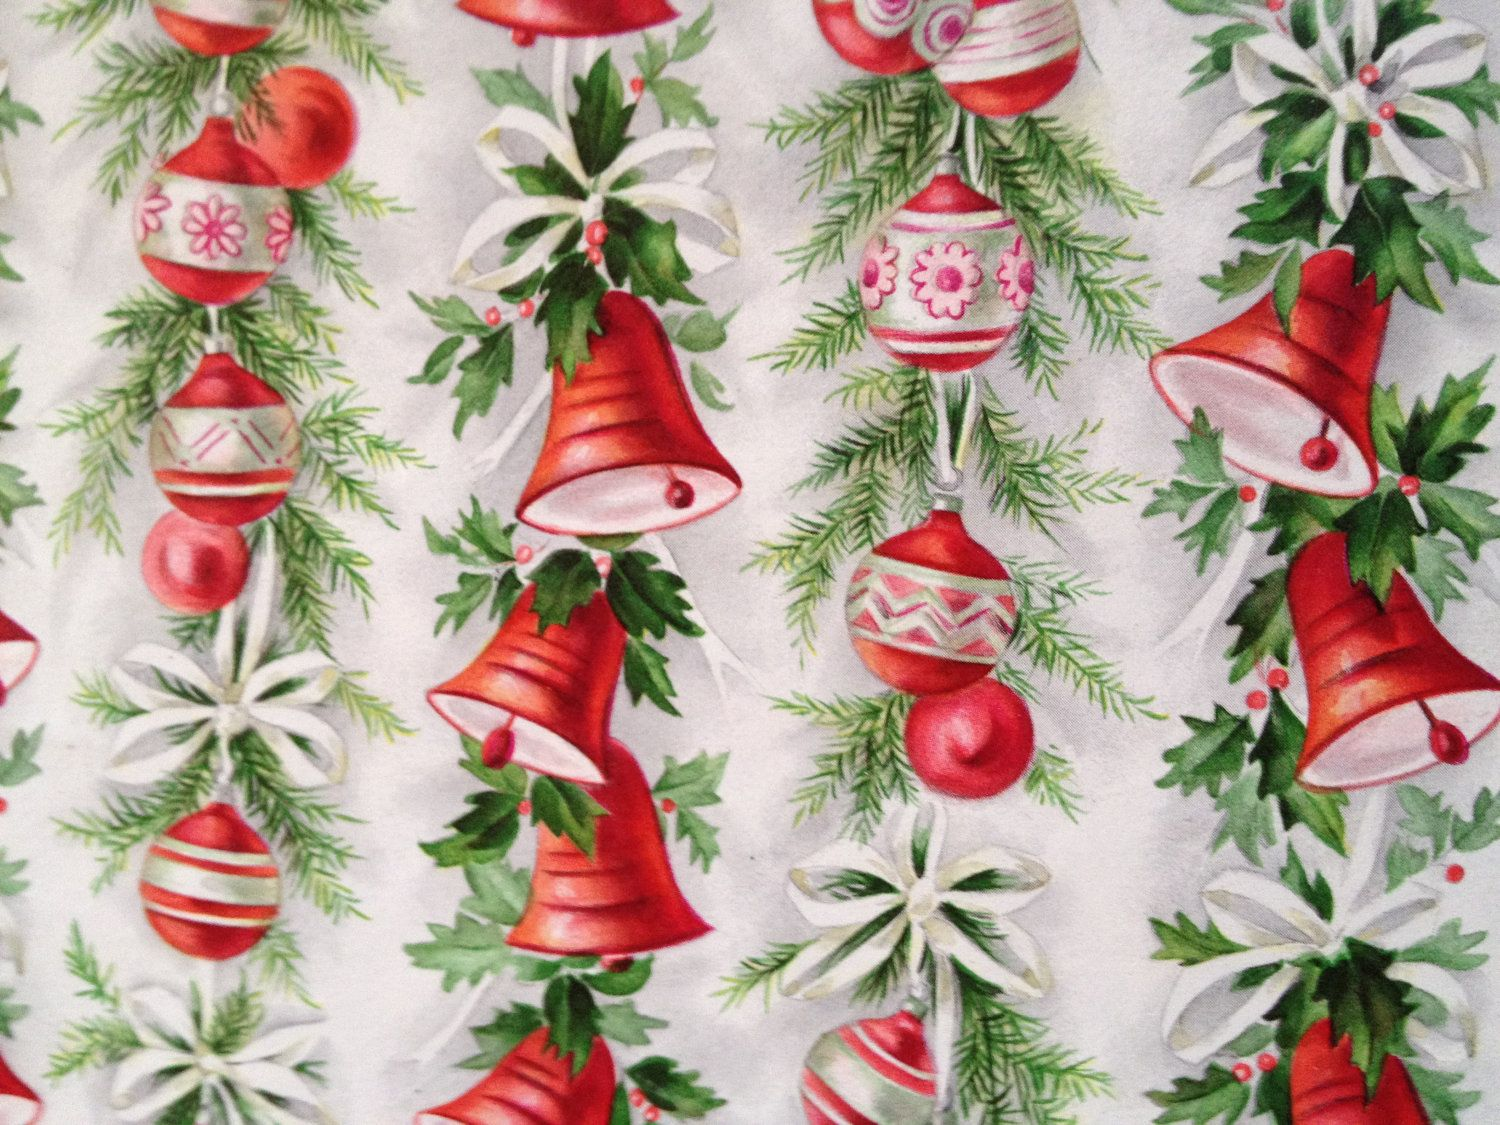 17 best images about vintage wrapping paper 17 best images about vintage wrapping paper christmas wrapping papers candy canes and gift wrapping paper